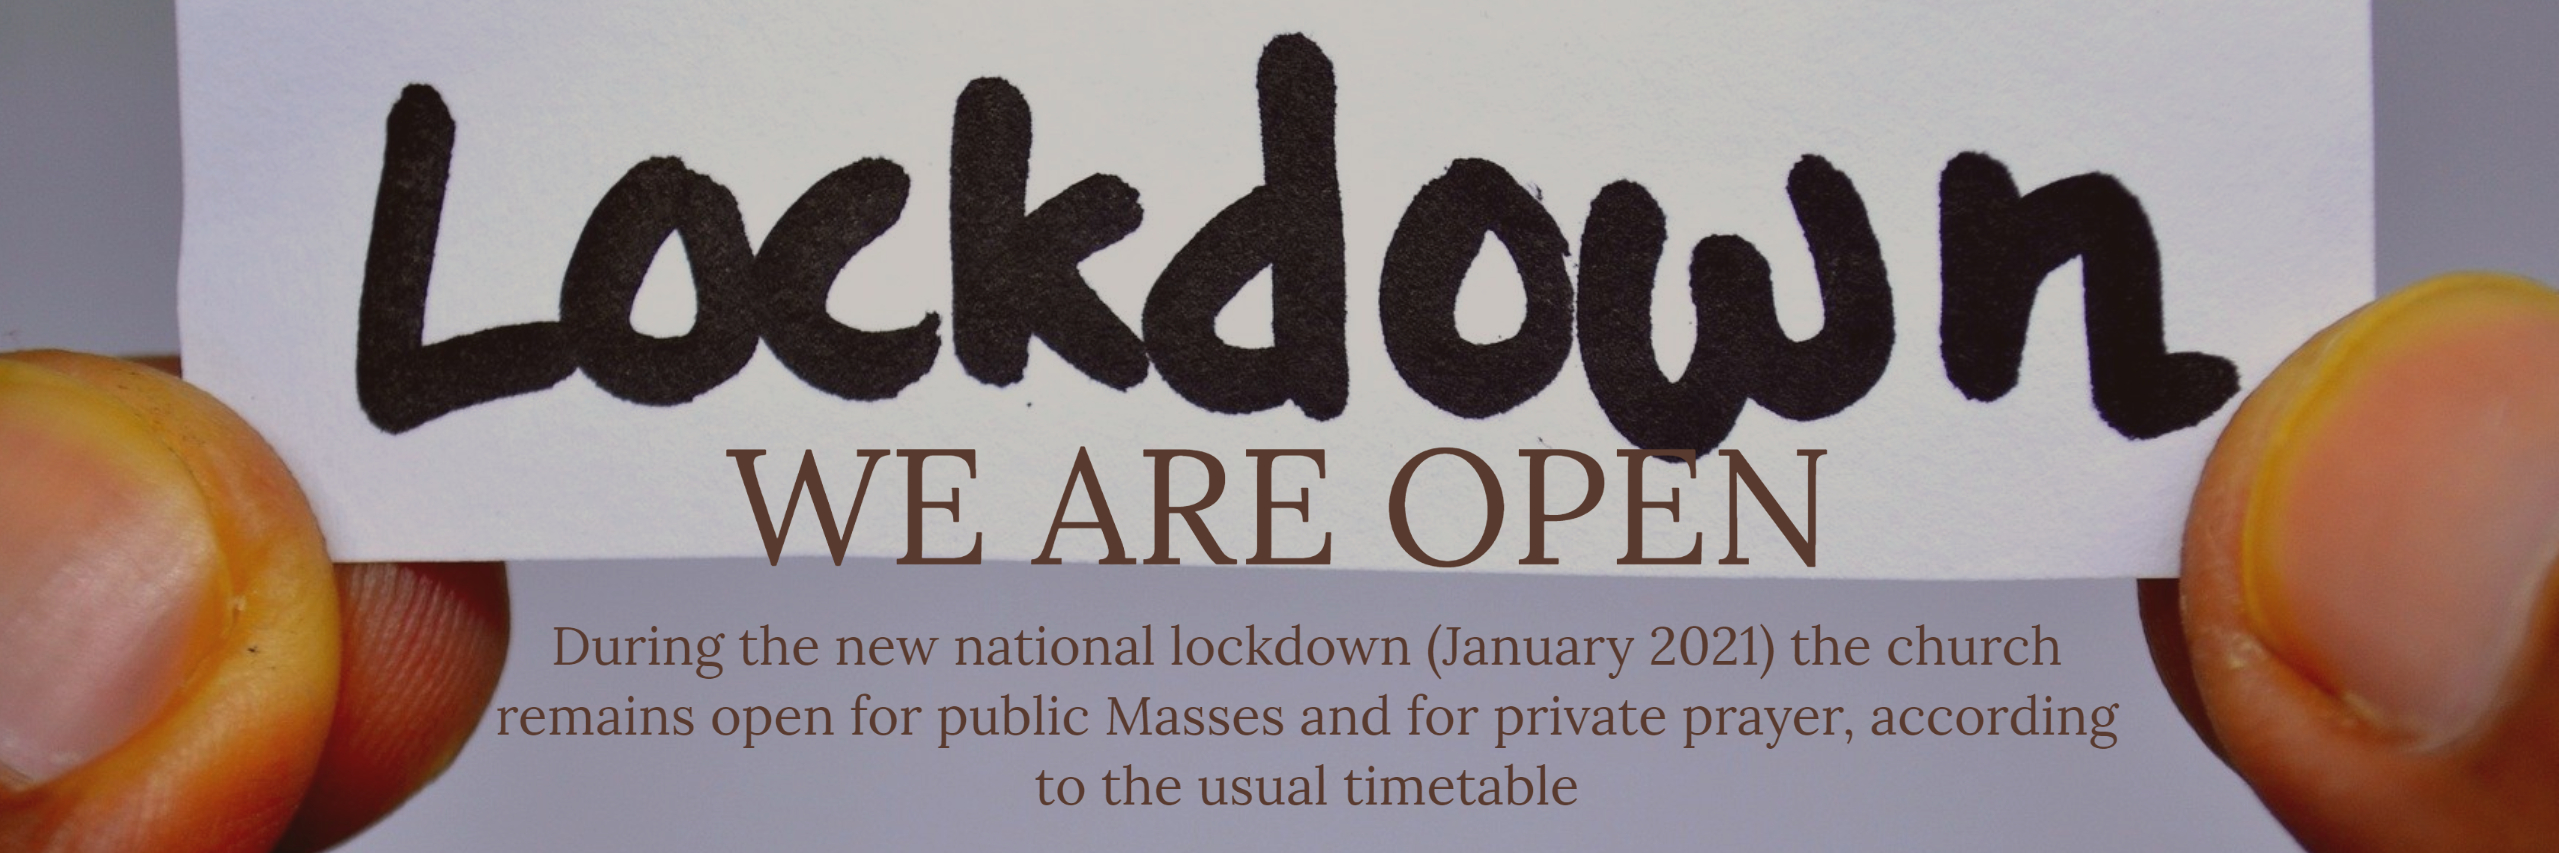 We are open - January 2021